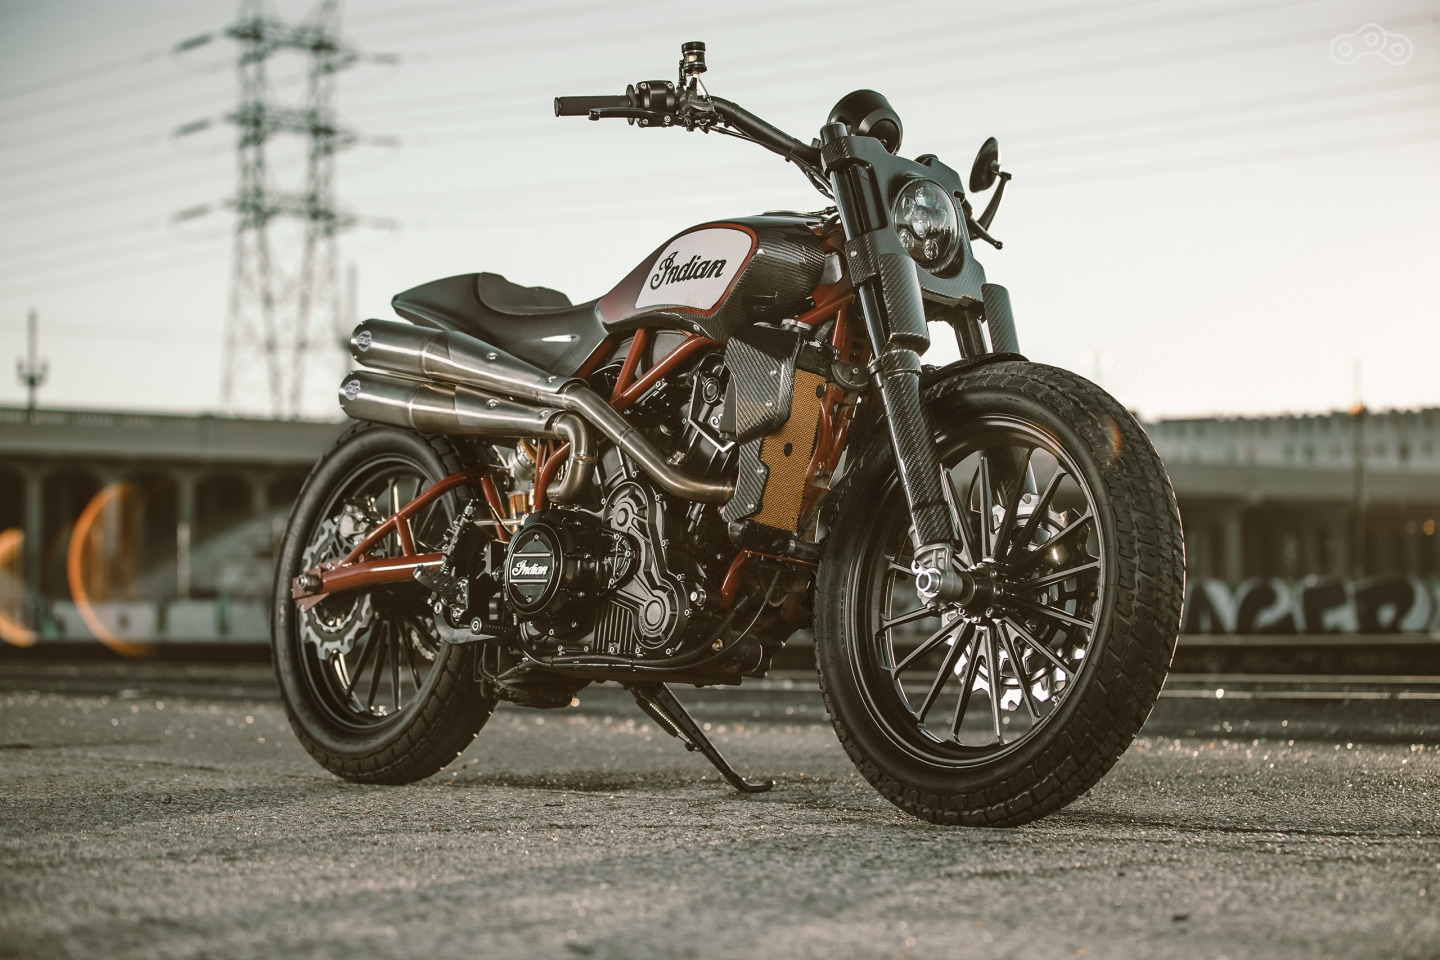 Indian Scout FTR1200 Custom 2017